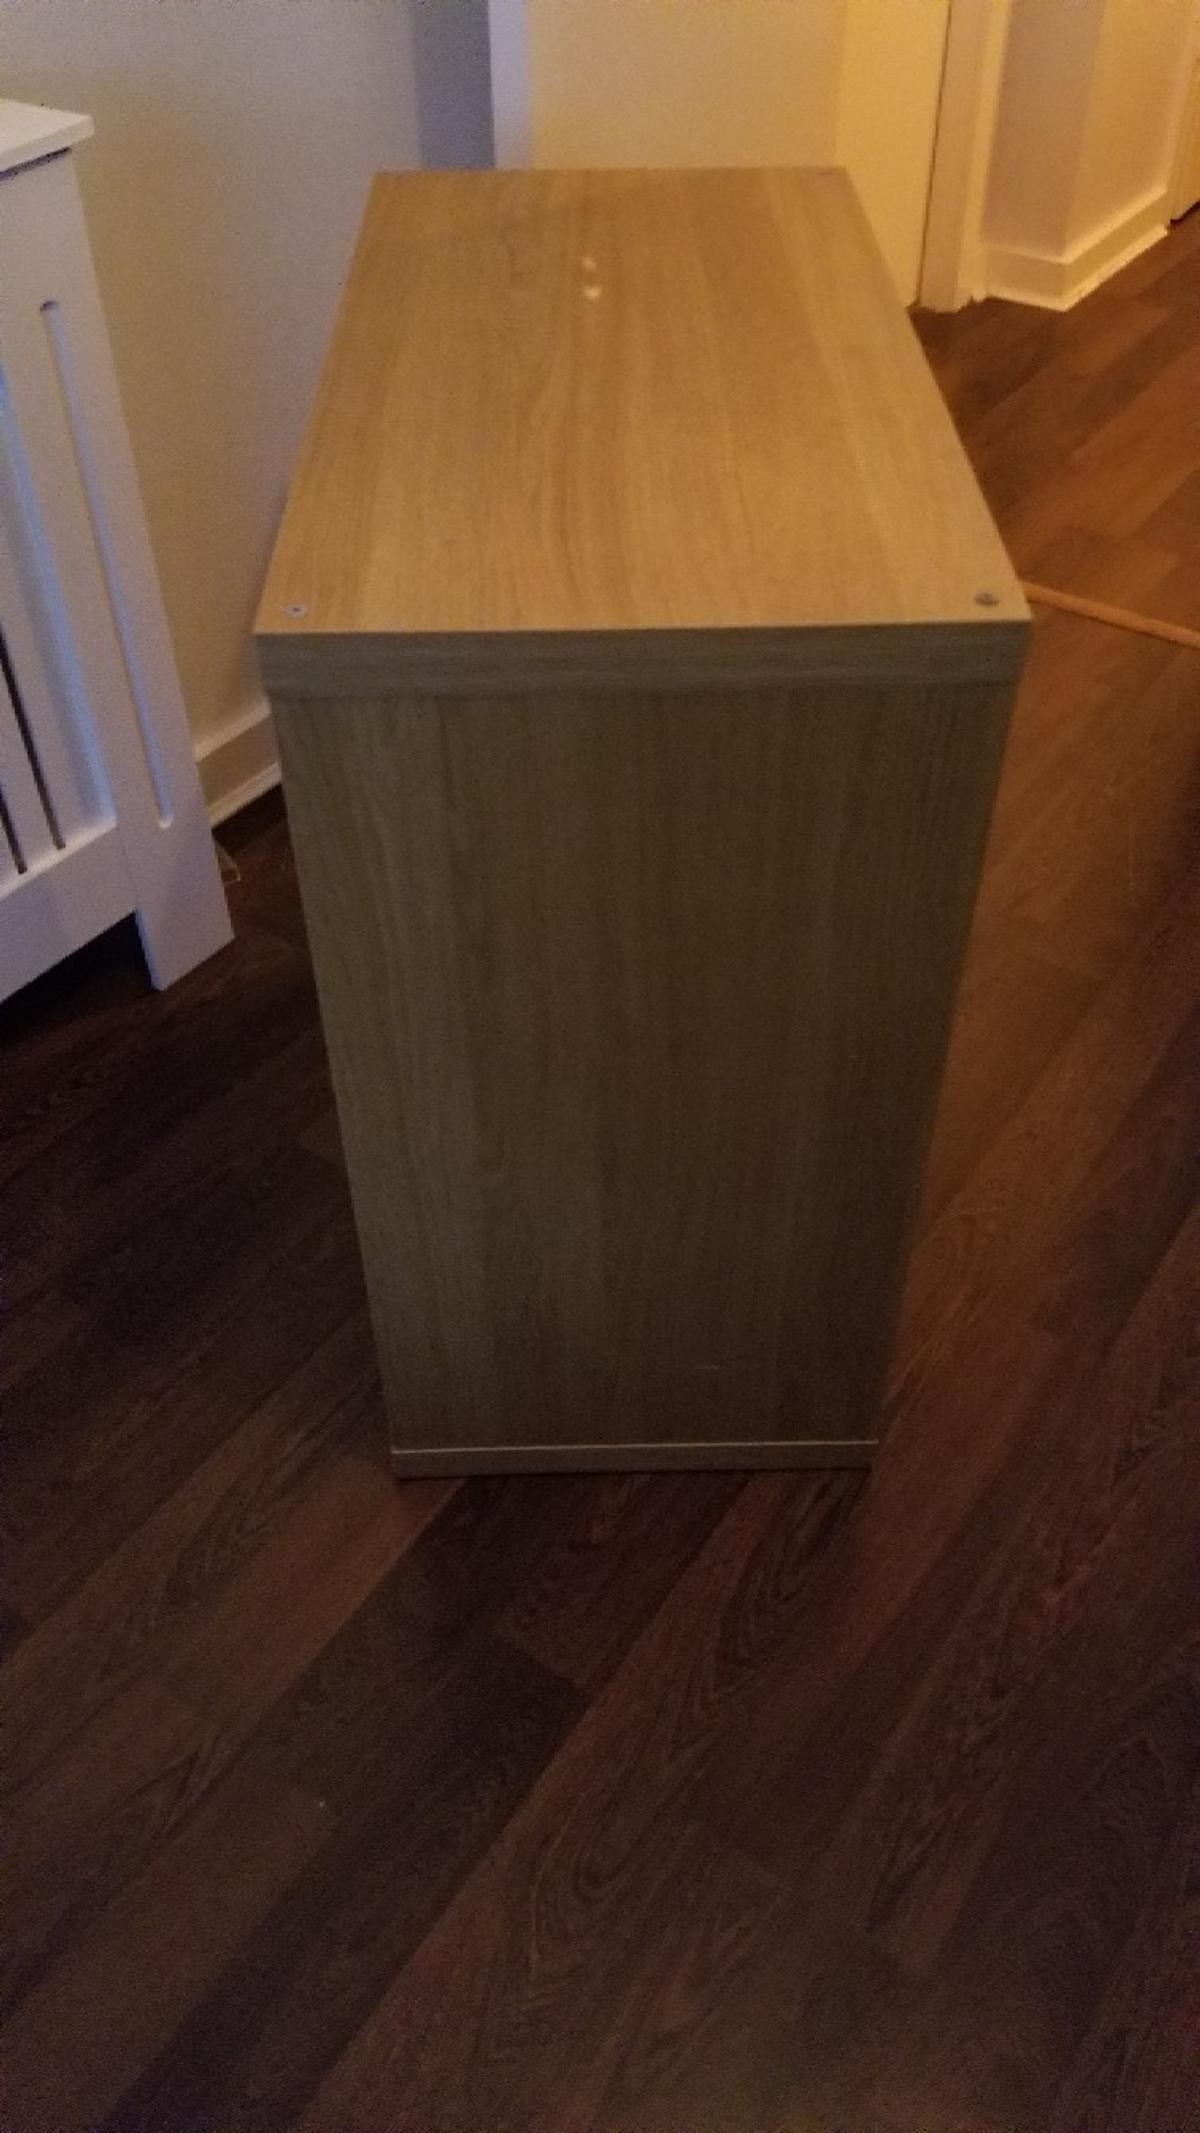 IKEA 4 Cube Storage / Shelf Unit in SK14 Tameside for £20 00